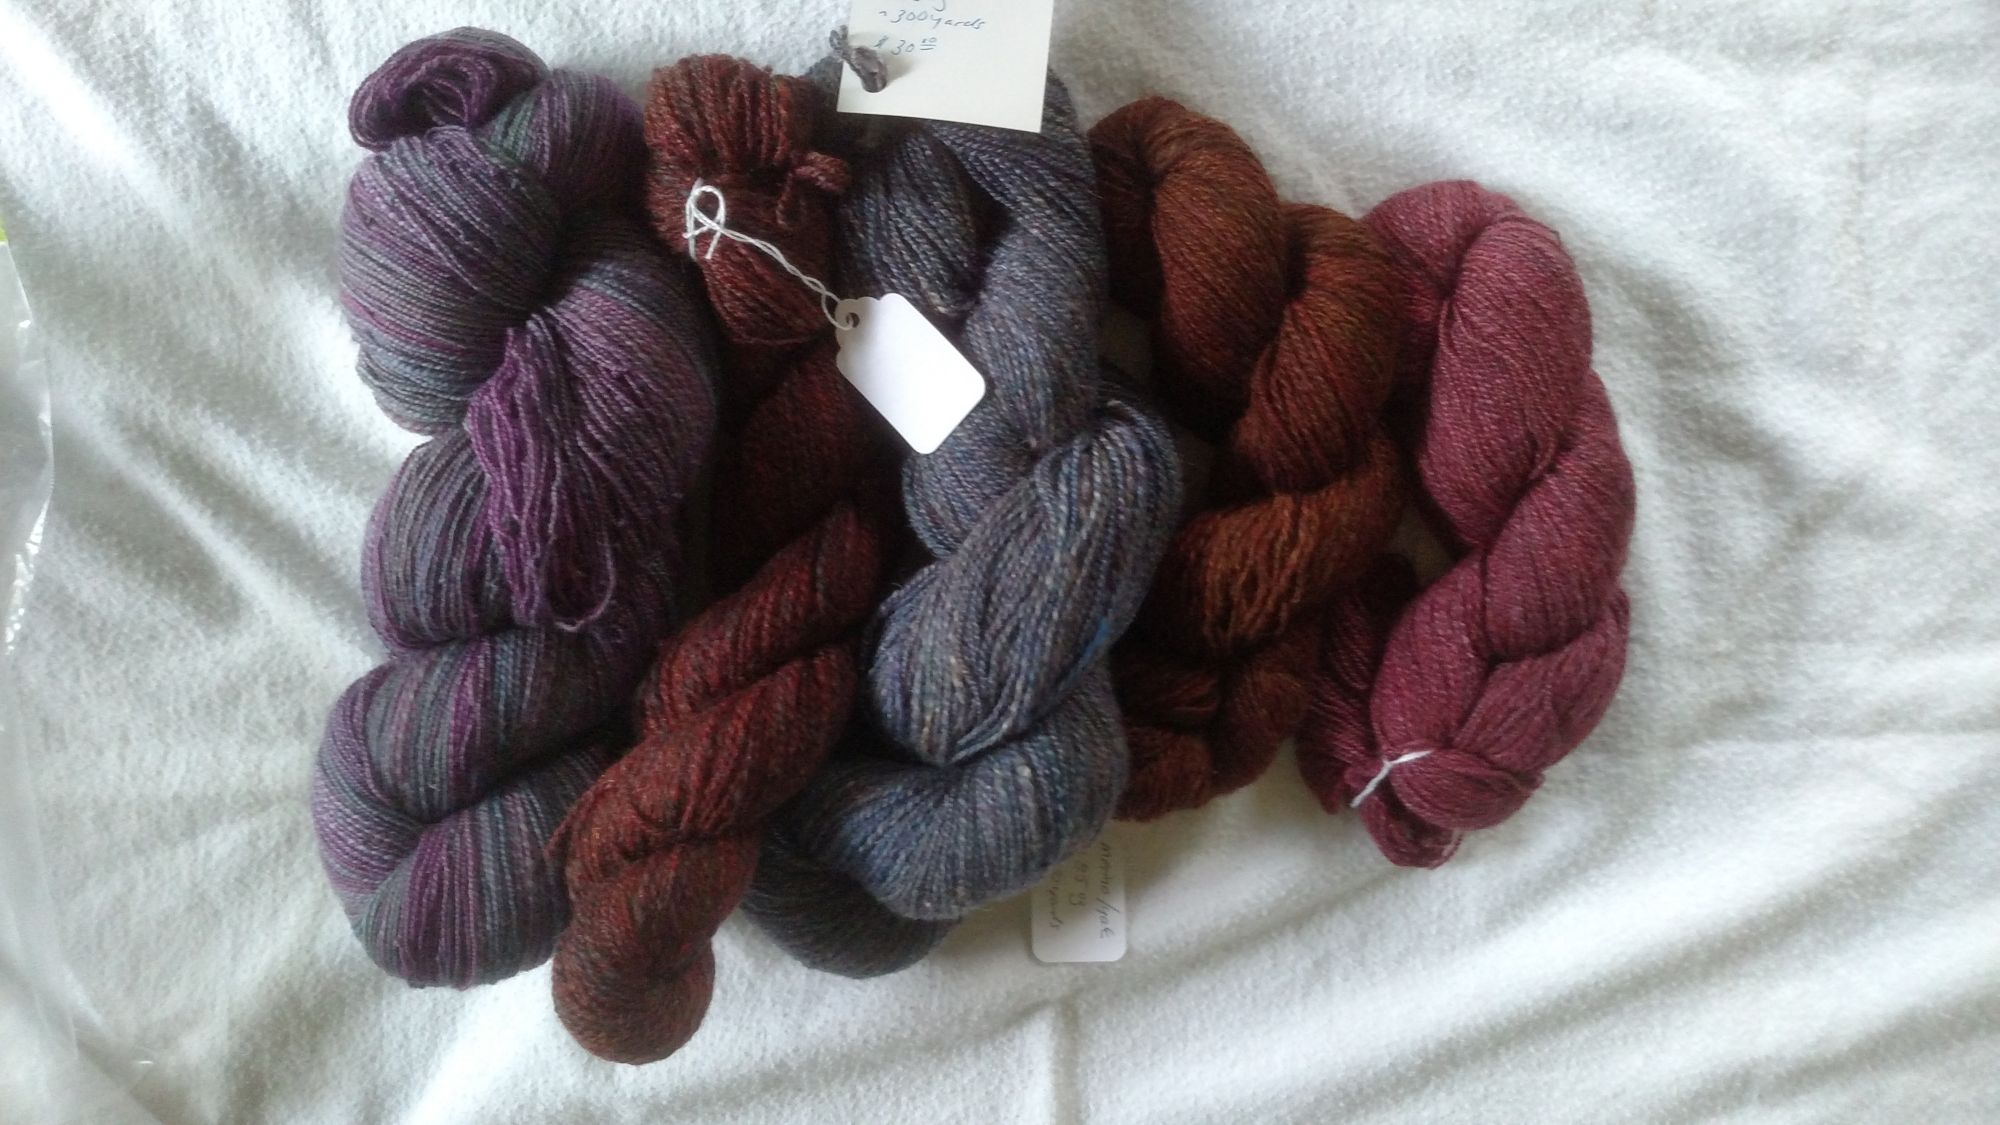 Natural Dyes Around the House with Jane Bynum